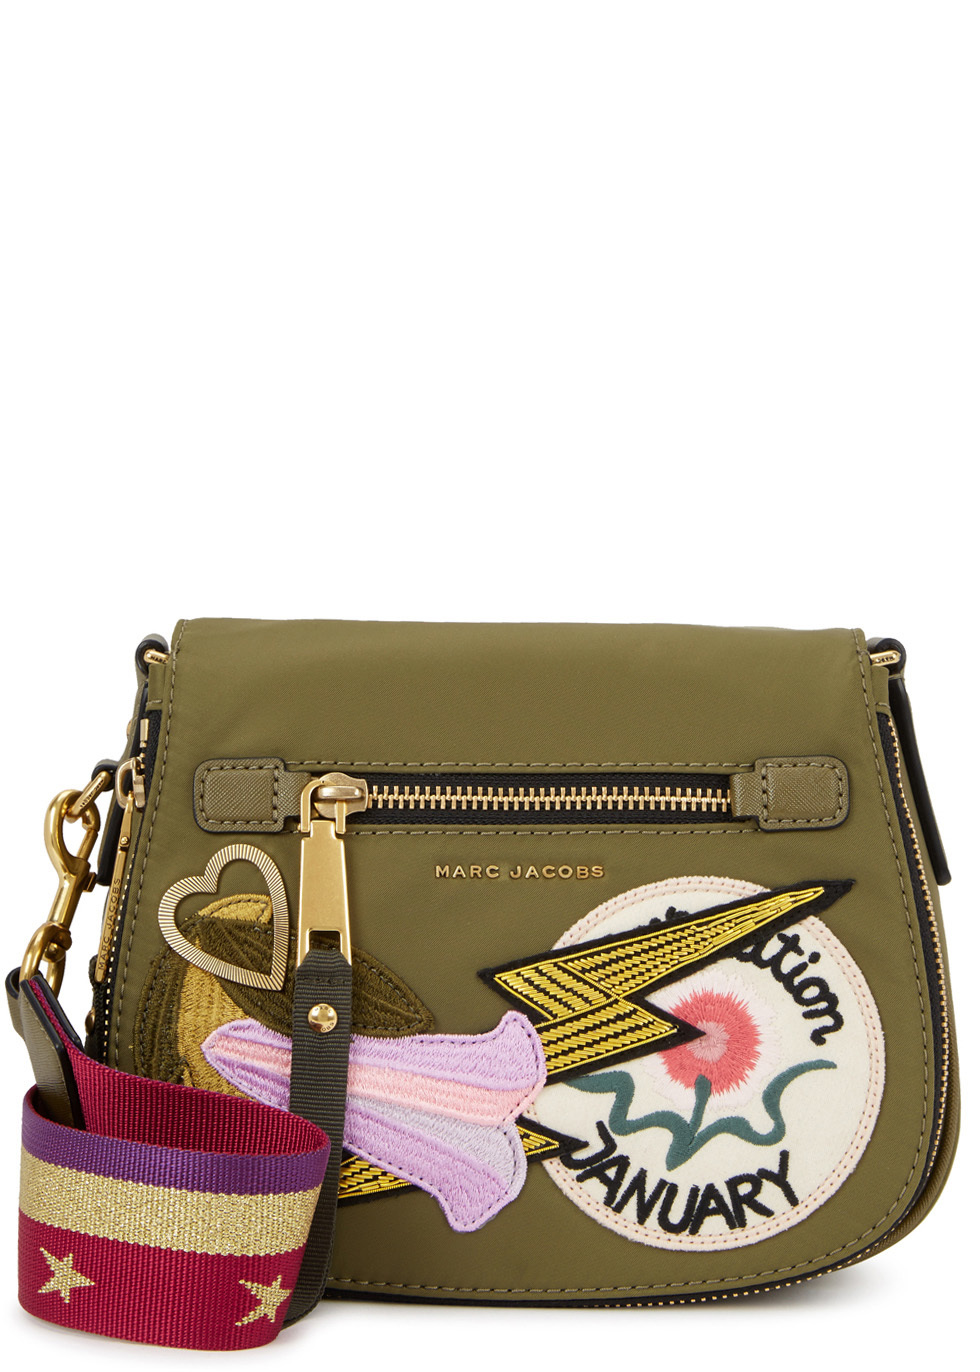 Nomad Small AppliquÃd Shoulder Bag - secondary colour: white; predominant colour: khaki; occasions: casual; type of pattern: standard; style: shoulder; length: shoulder (tucks under arm); size: small; material: leather; embellishment: applique; finish: plain; pattern: patterned/print; multicoloured: multicoloured; wardrobe: highlight; season: s/s 2017